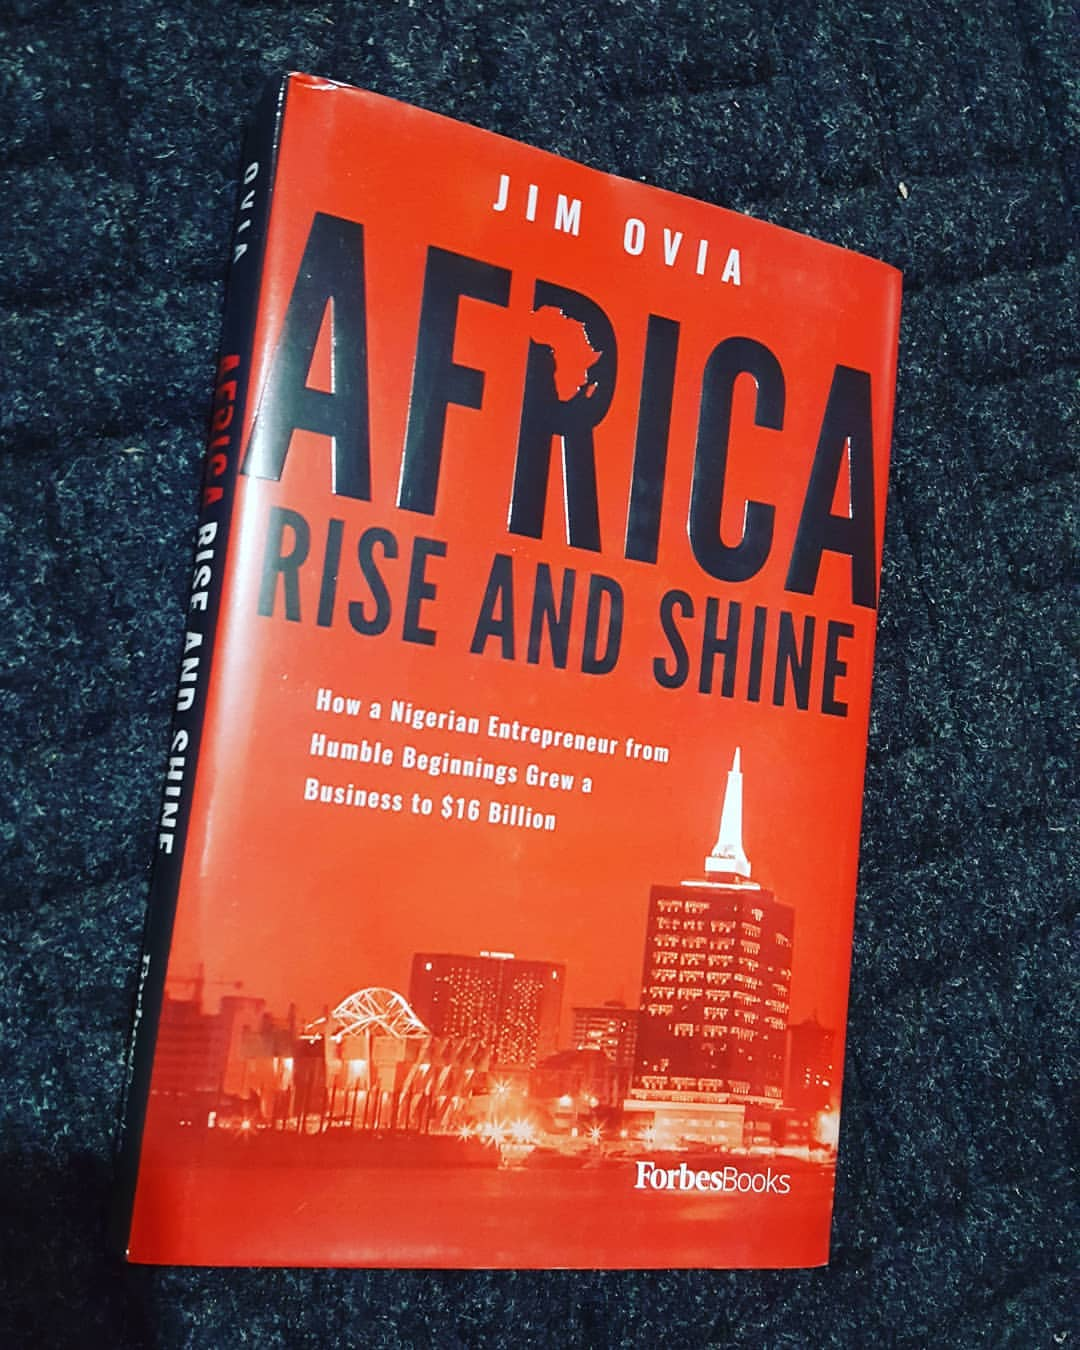 Africa Rise And Shine: How a Nigerian Entrepreneur from Humble Beginnings Grew a Business to $16 Billion – By Jim Ovia